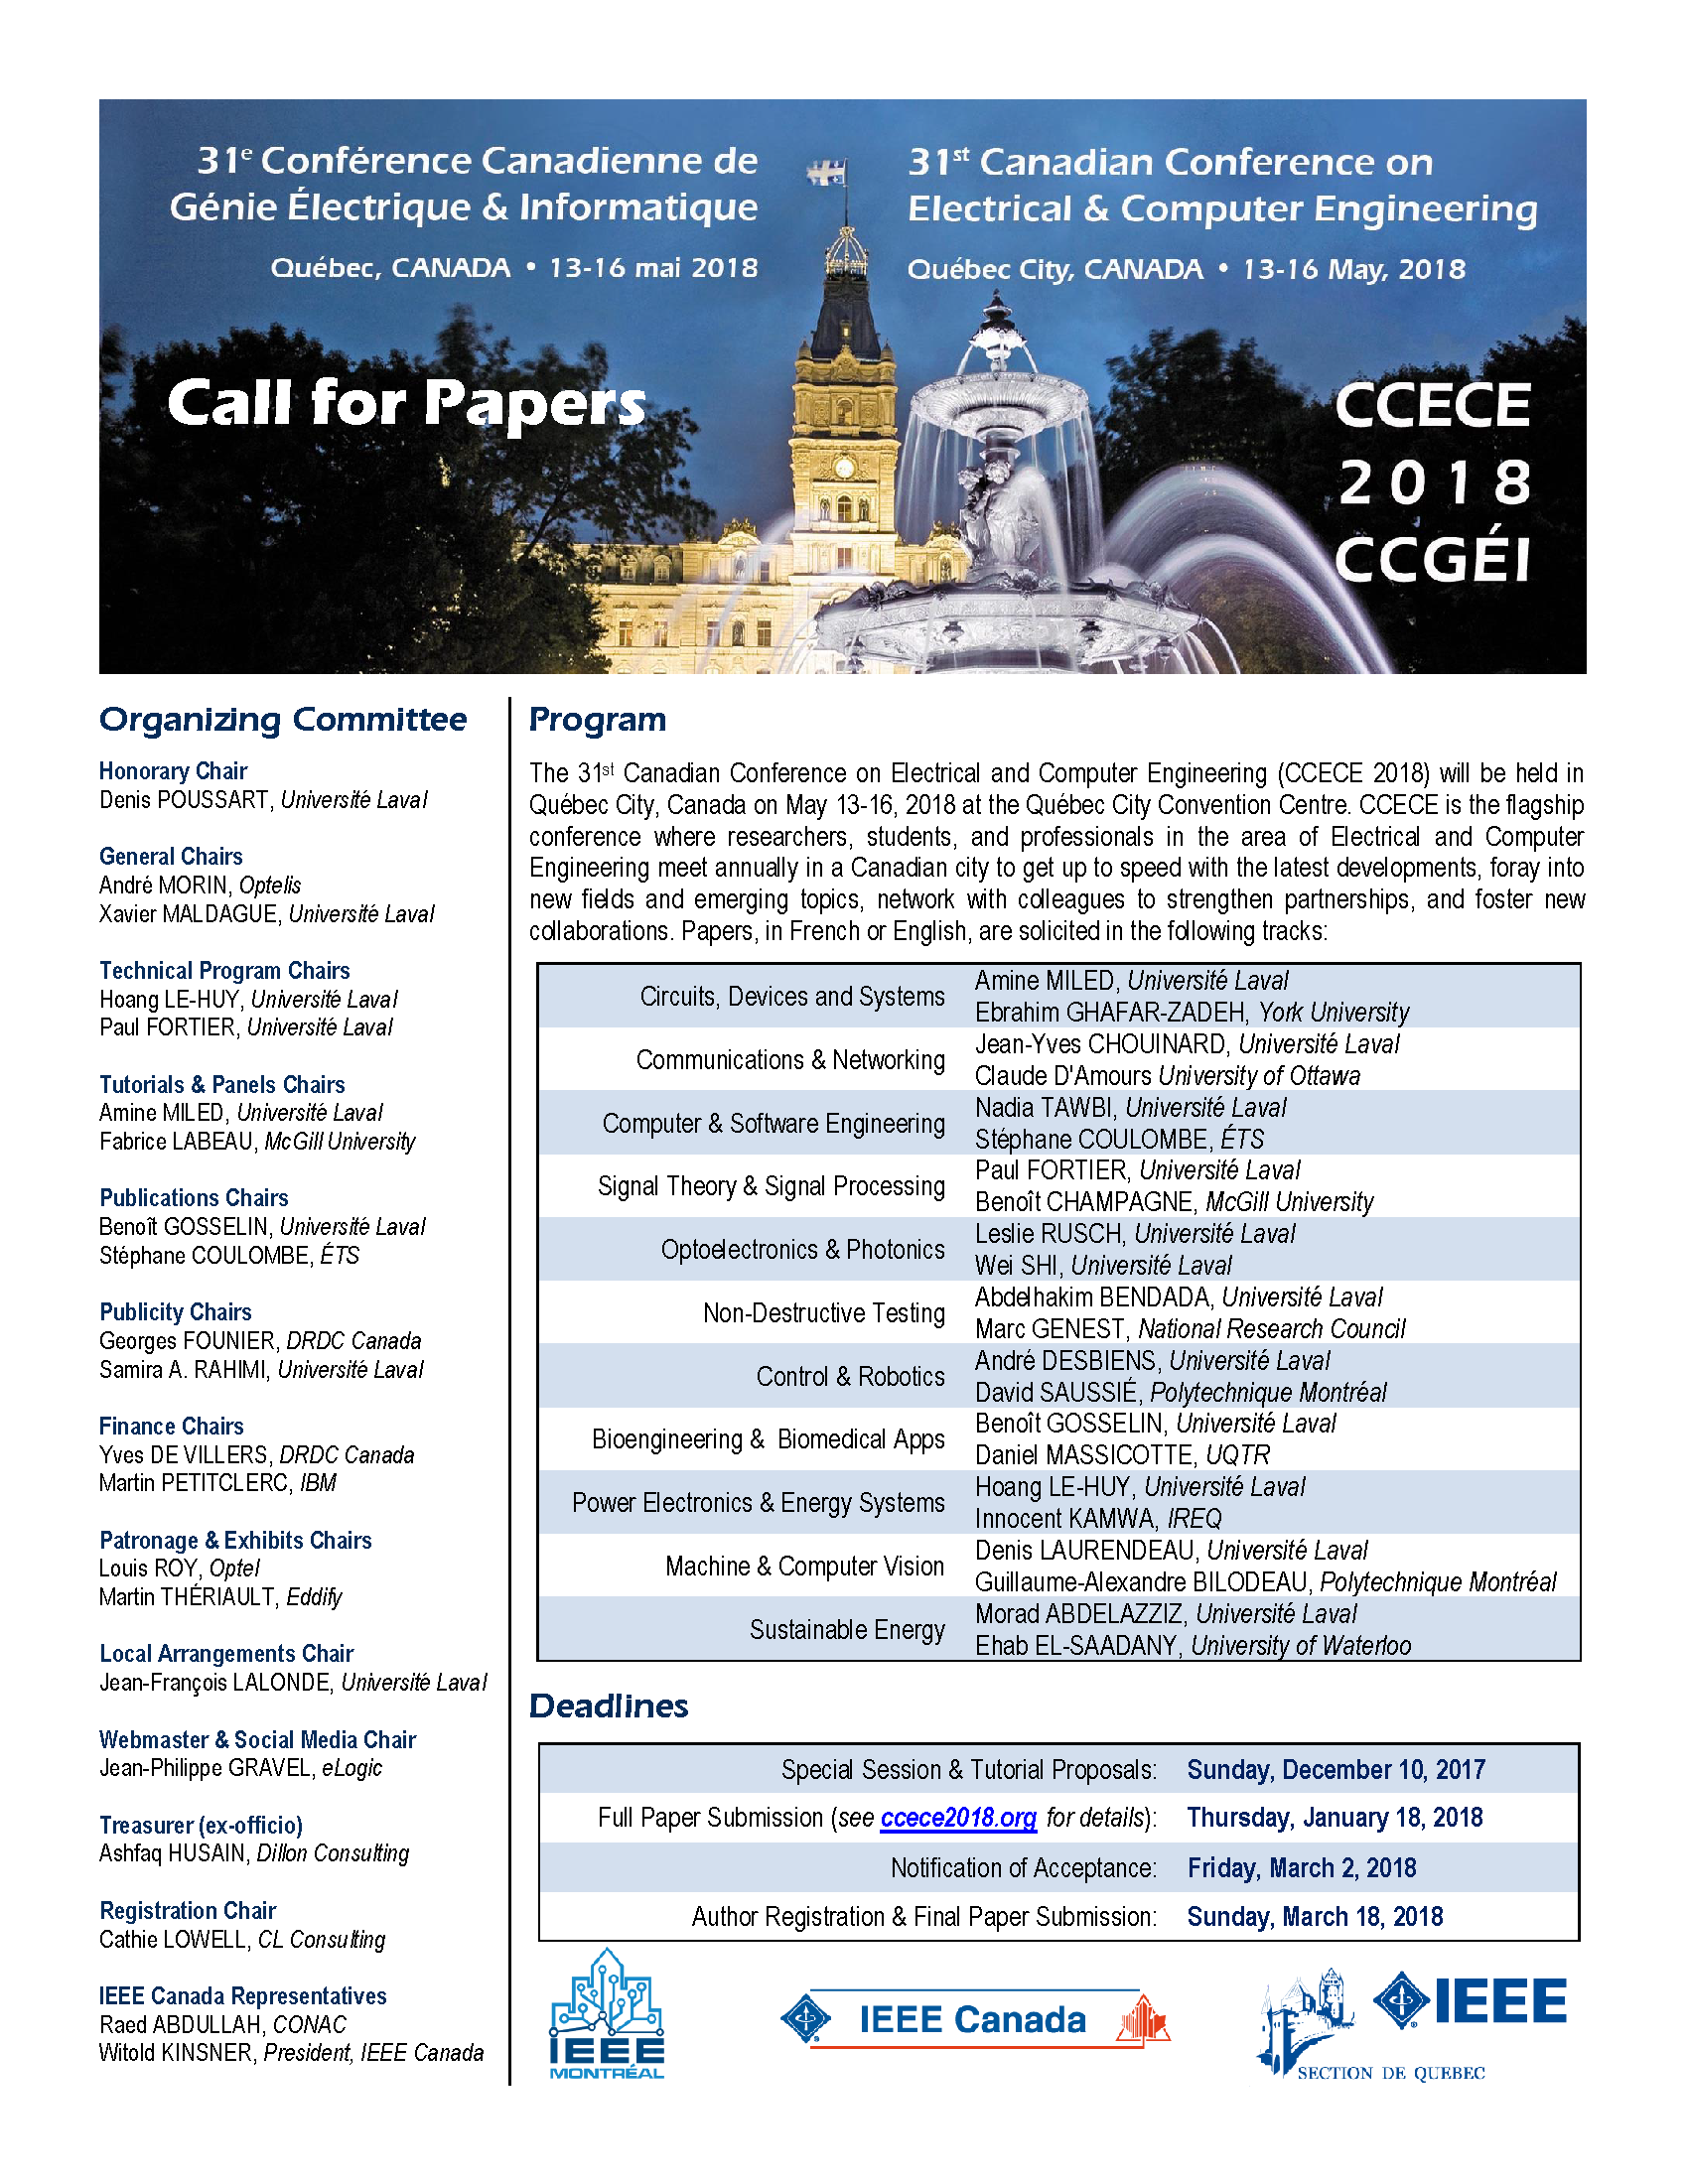 CCECE 2018 Call for Papers - English version